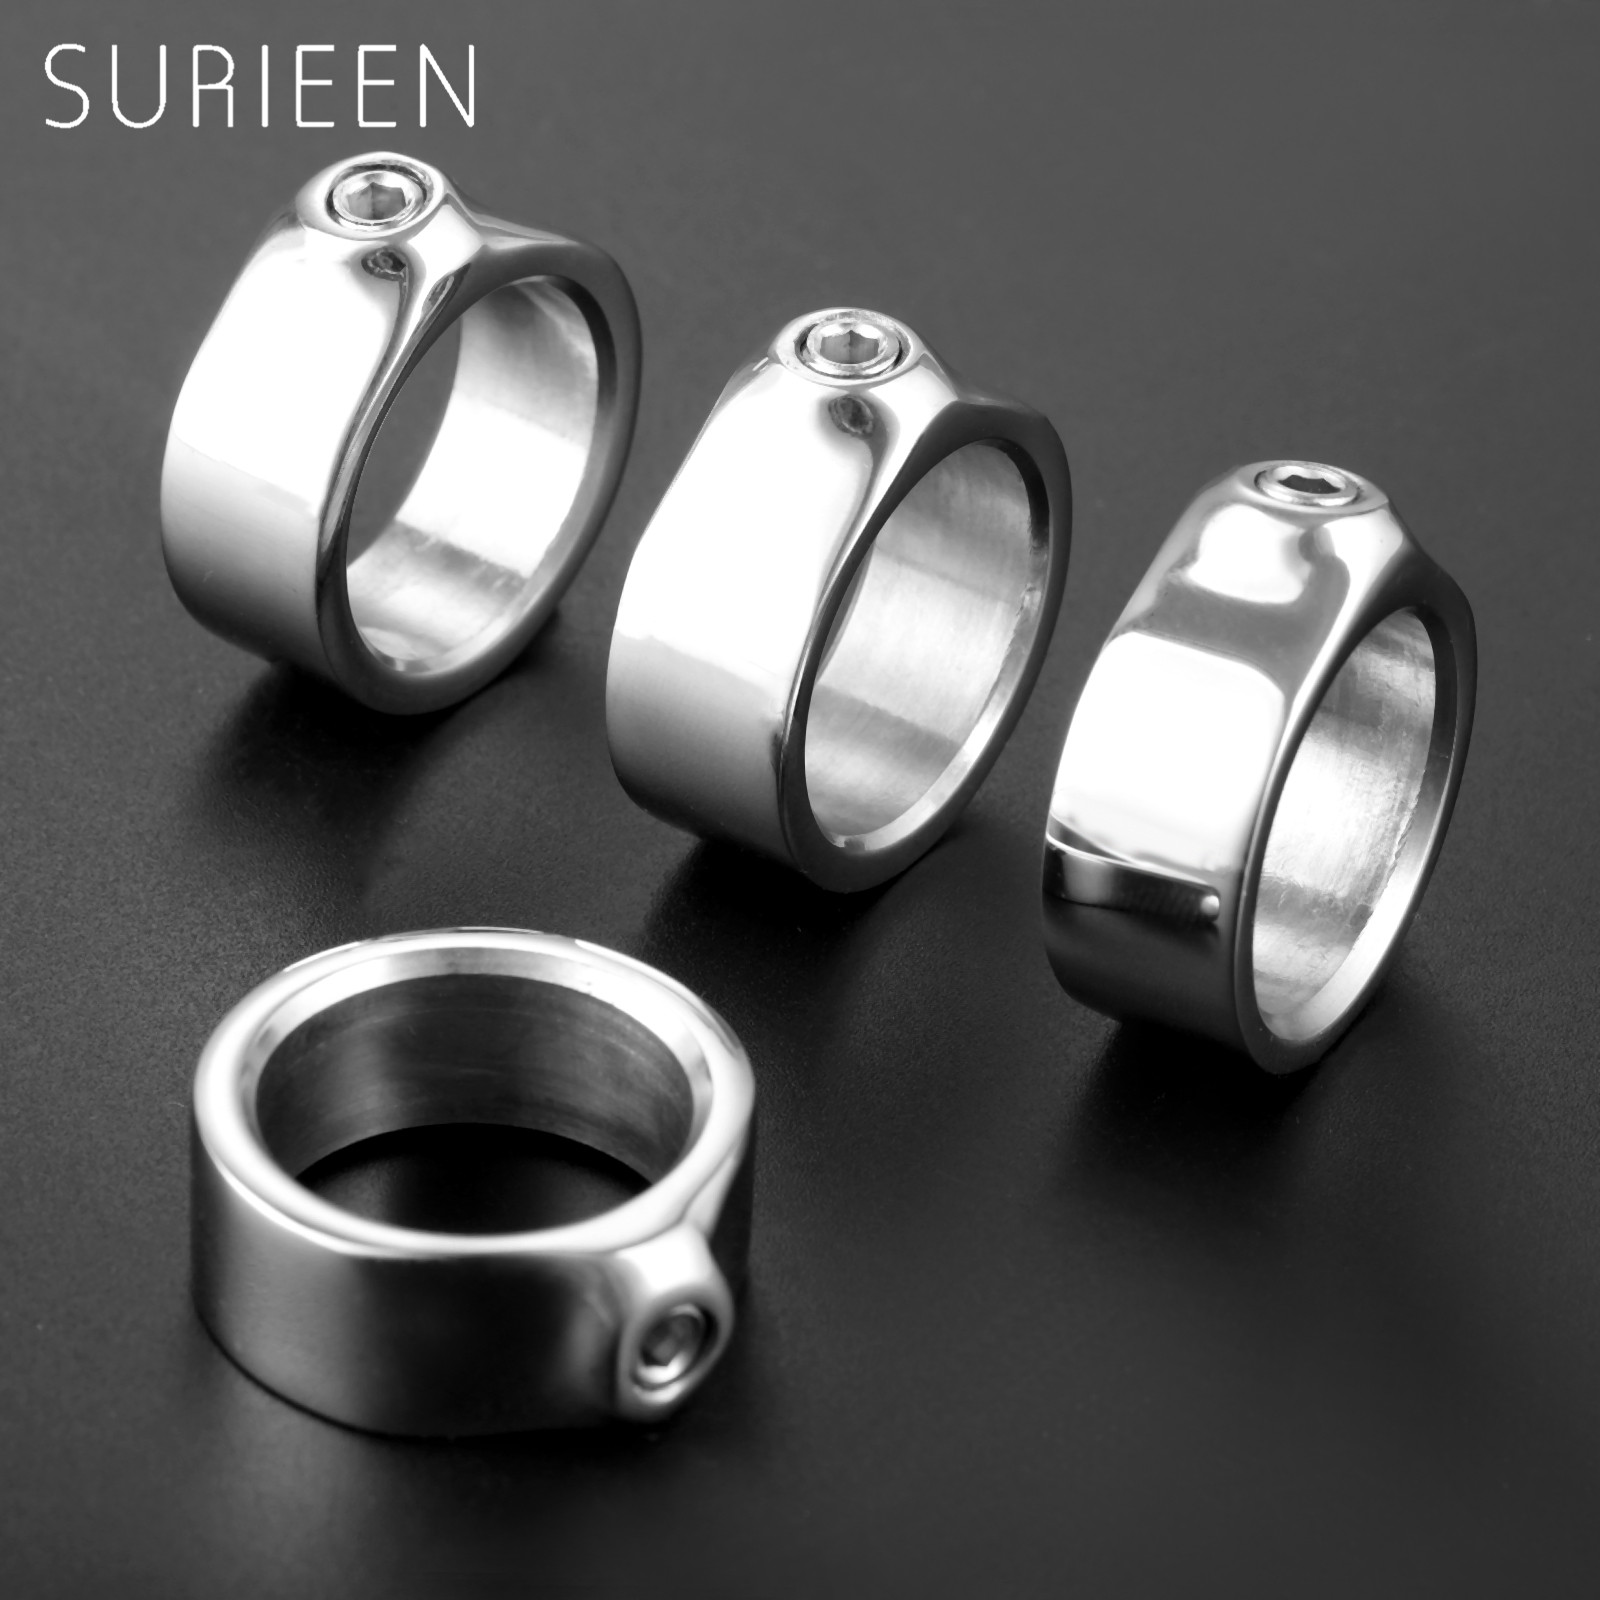 SURIEEN 4Pcs Marine Boat Yacht 316 Stainless Steel Adjustment O Ring With Set Screw Yachts Car Trailer Boats Accessories Marine